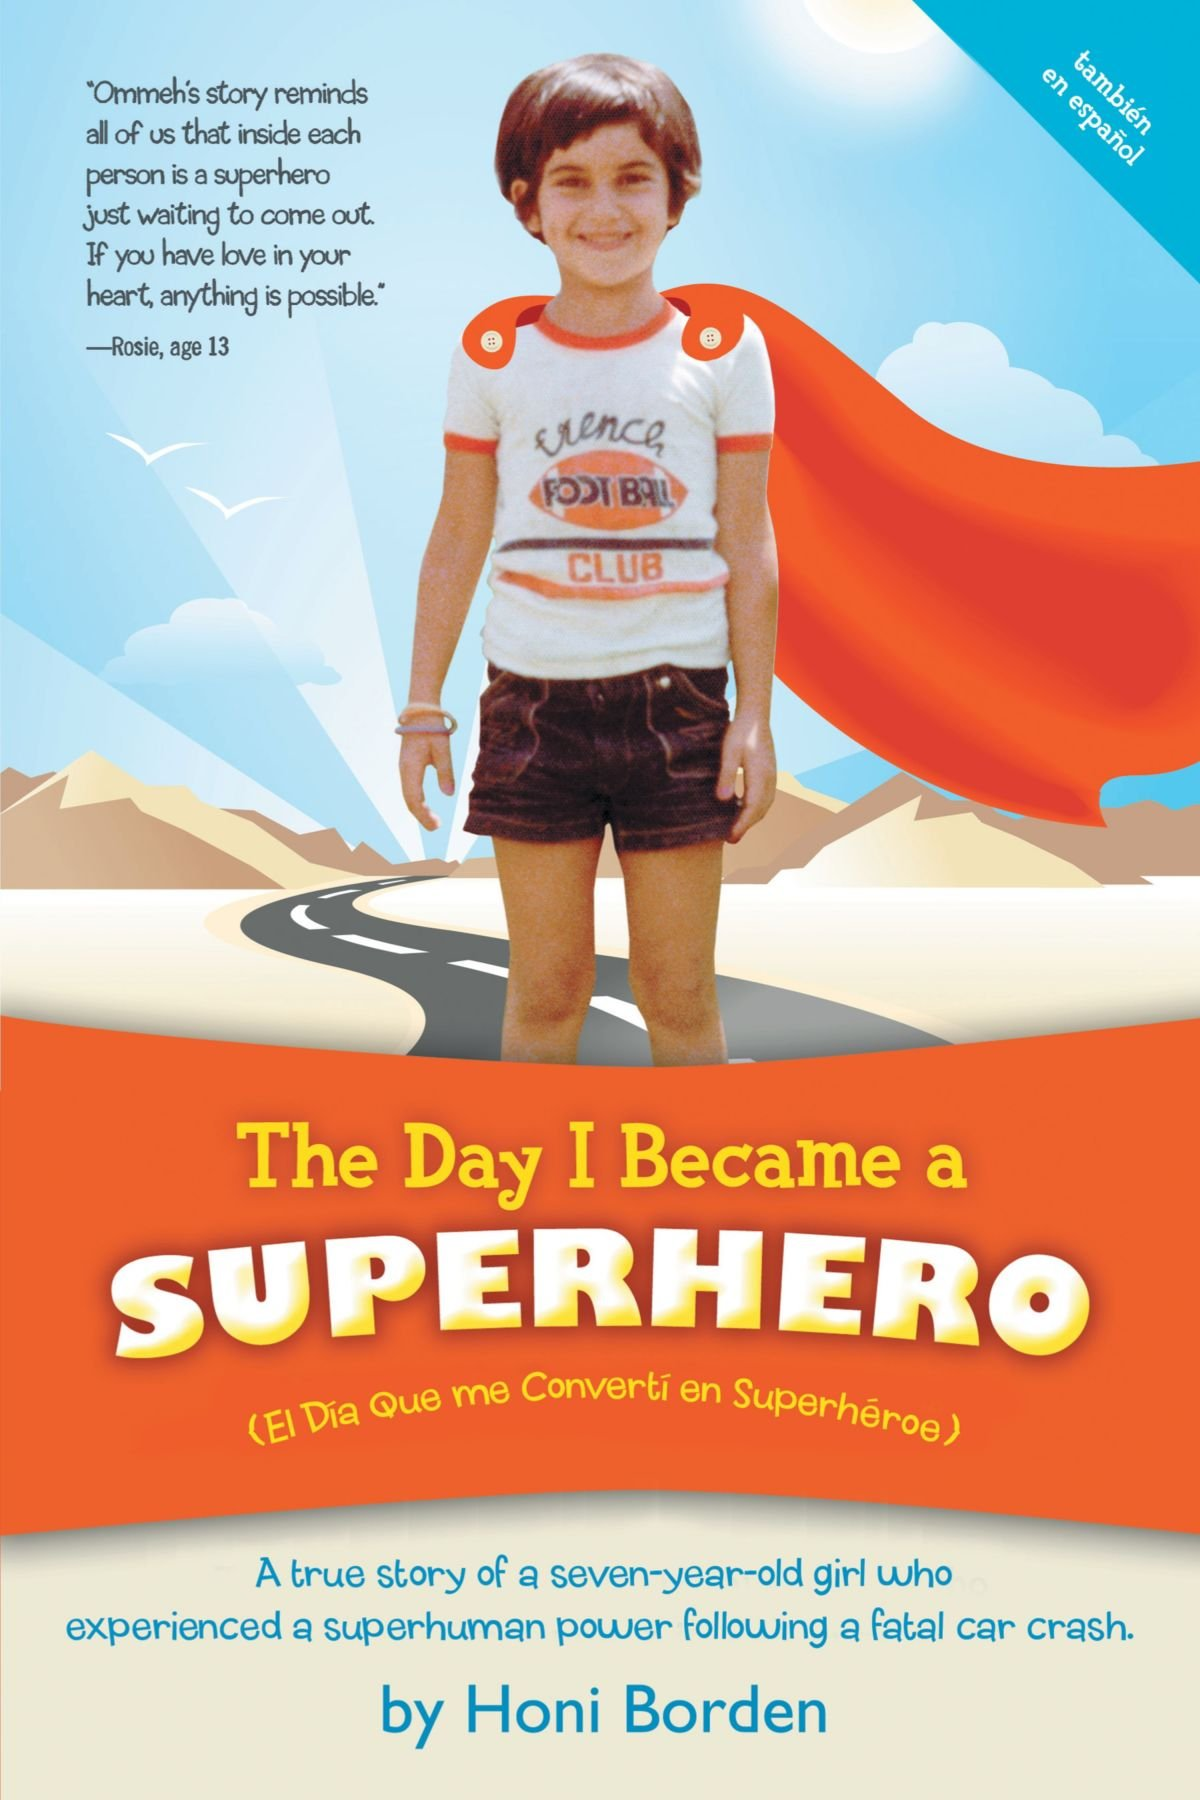 The Day I Became A Superhero: A True Story Of A Seven-Year-Old Girl Who Experienced A Superhuman Power Following A Fatal Car Crash.: A true story of a ... superhuman power following a fatal car crash. pdf epub